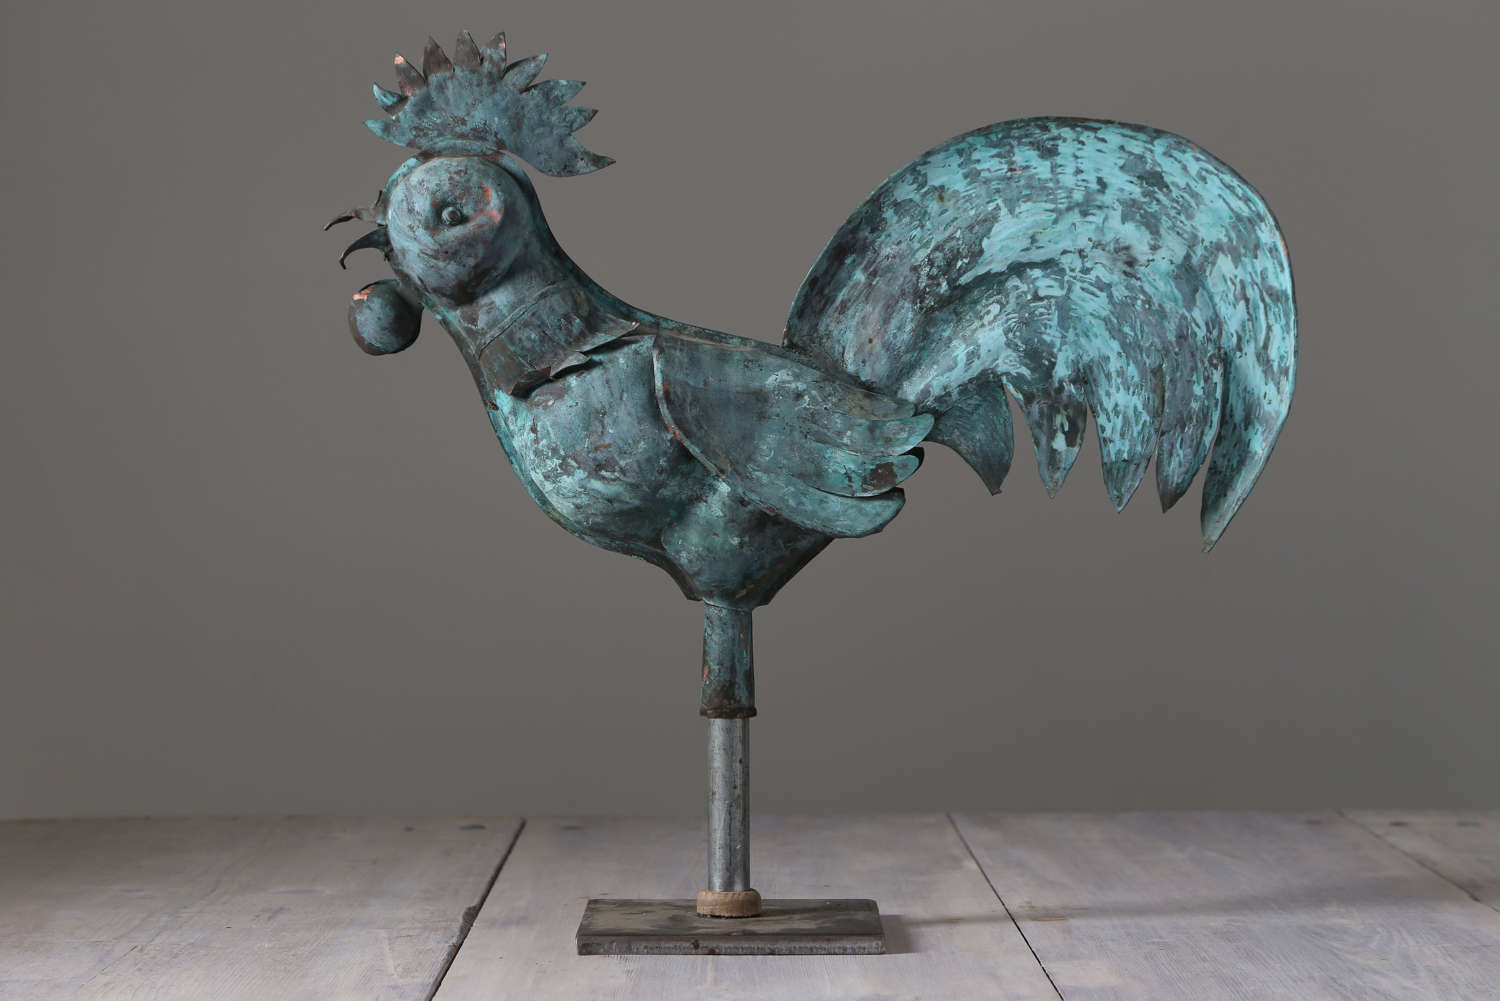 19th century French Copper Cockerel Weathervane mounted on a stand